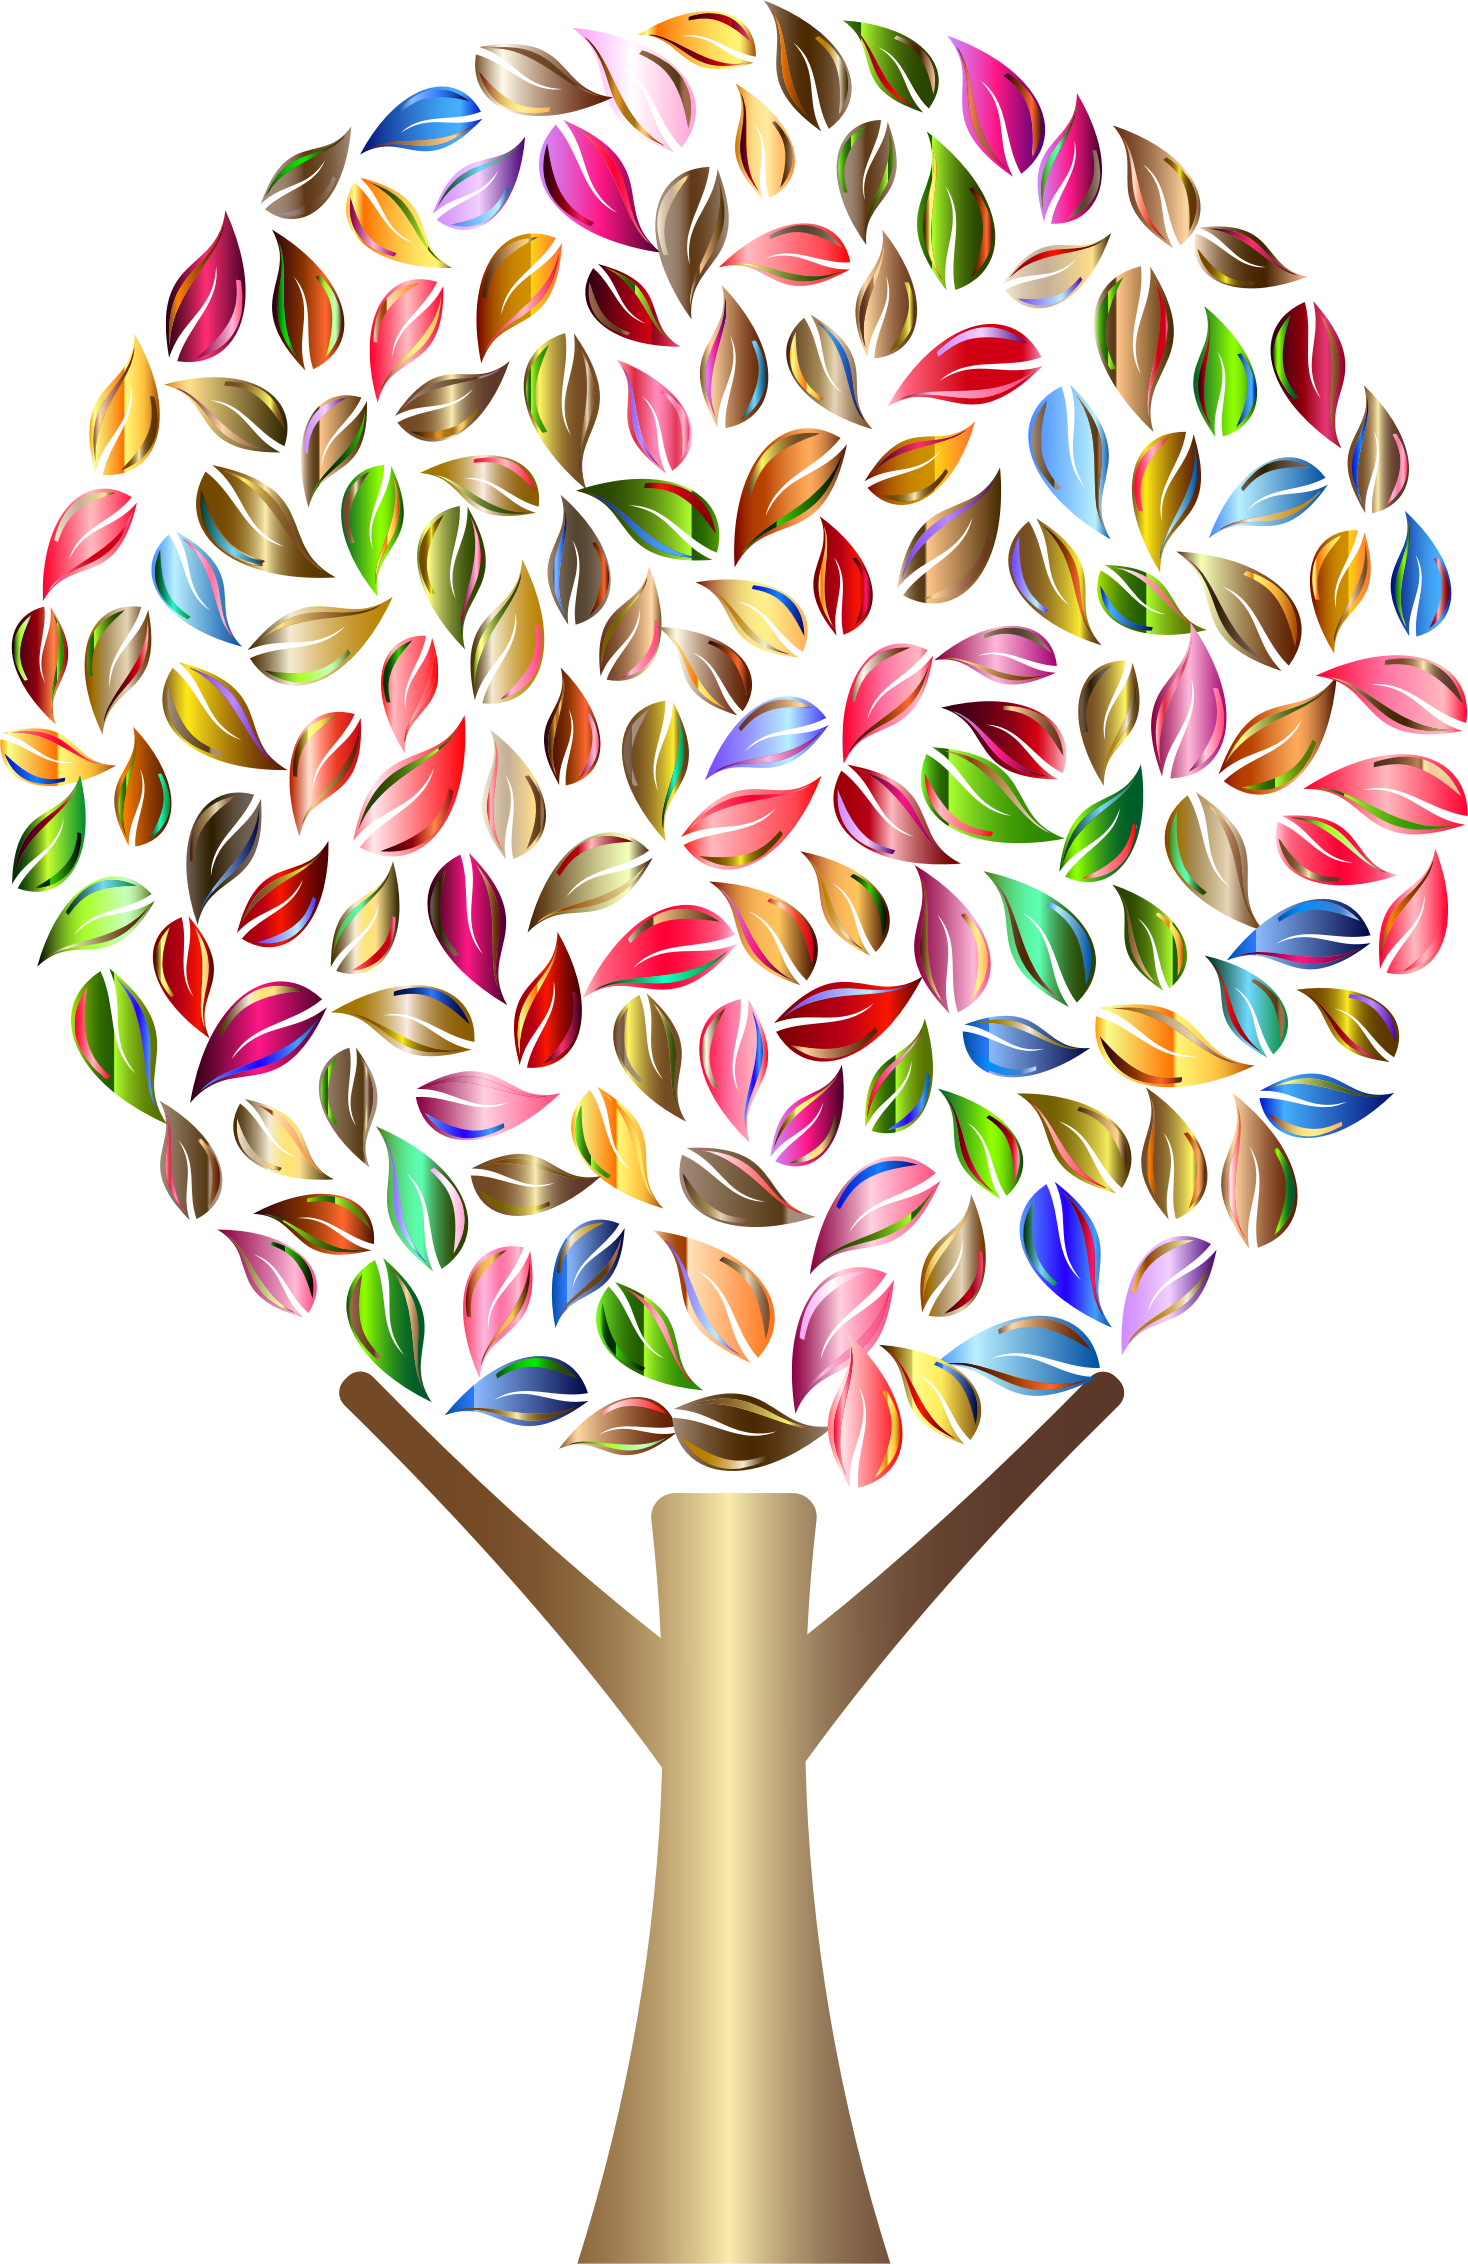 Clipart trees abstract. Prismatic tree no background